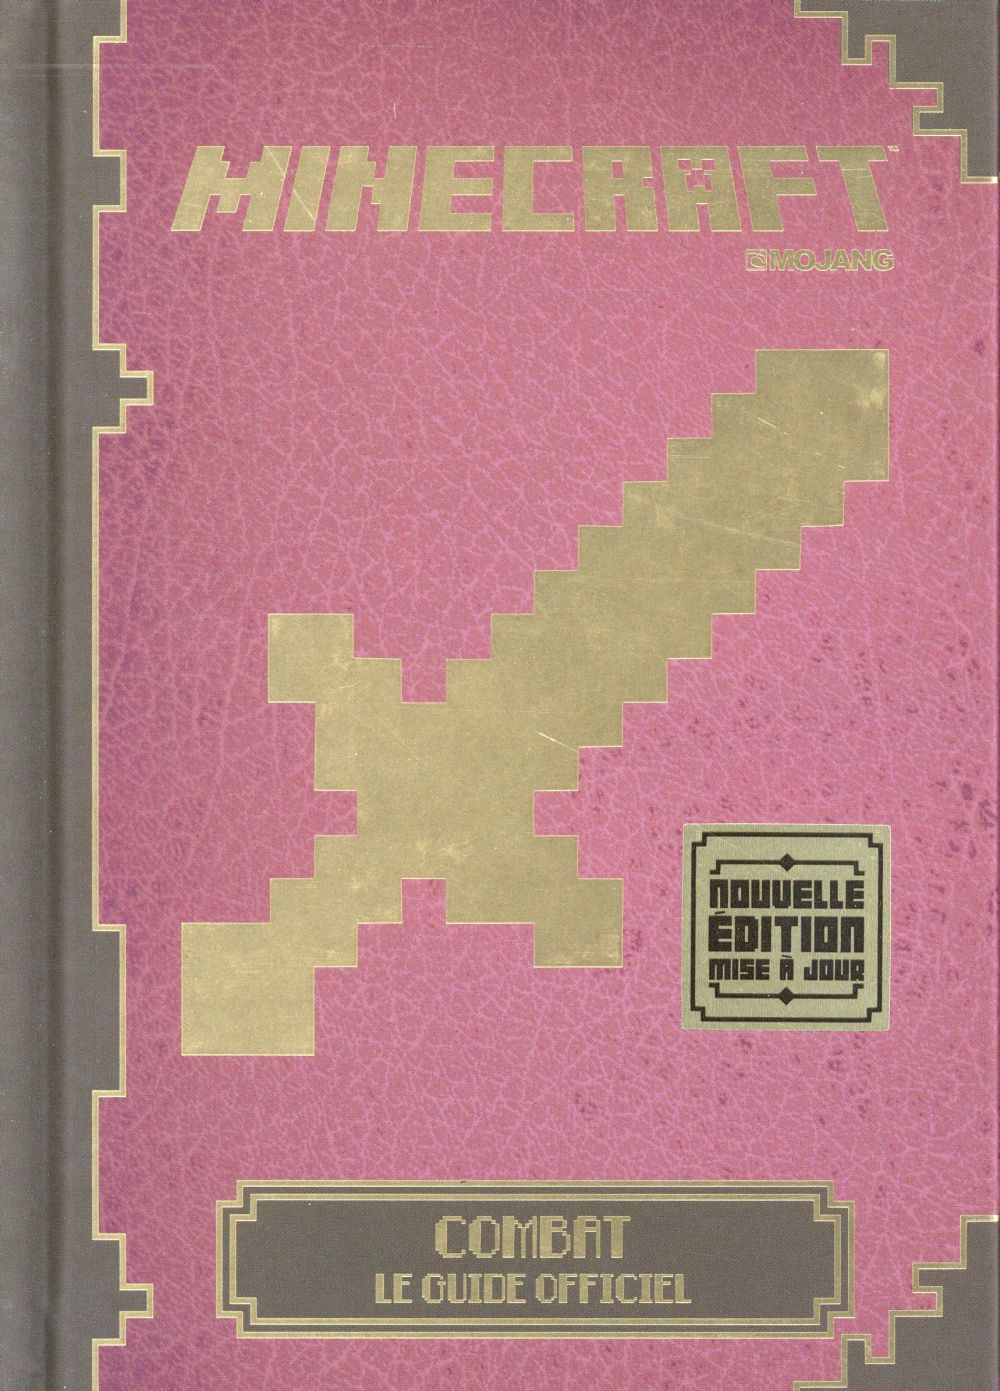 Minecraft : Combat le guide officiel / Stéphanie Milton | Collectif.